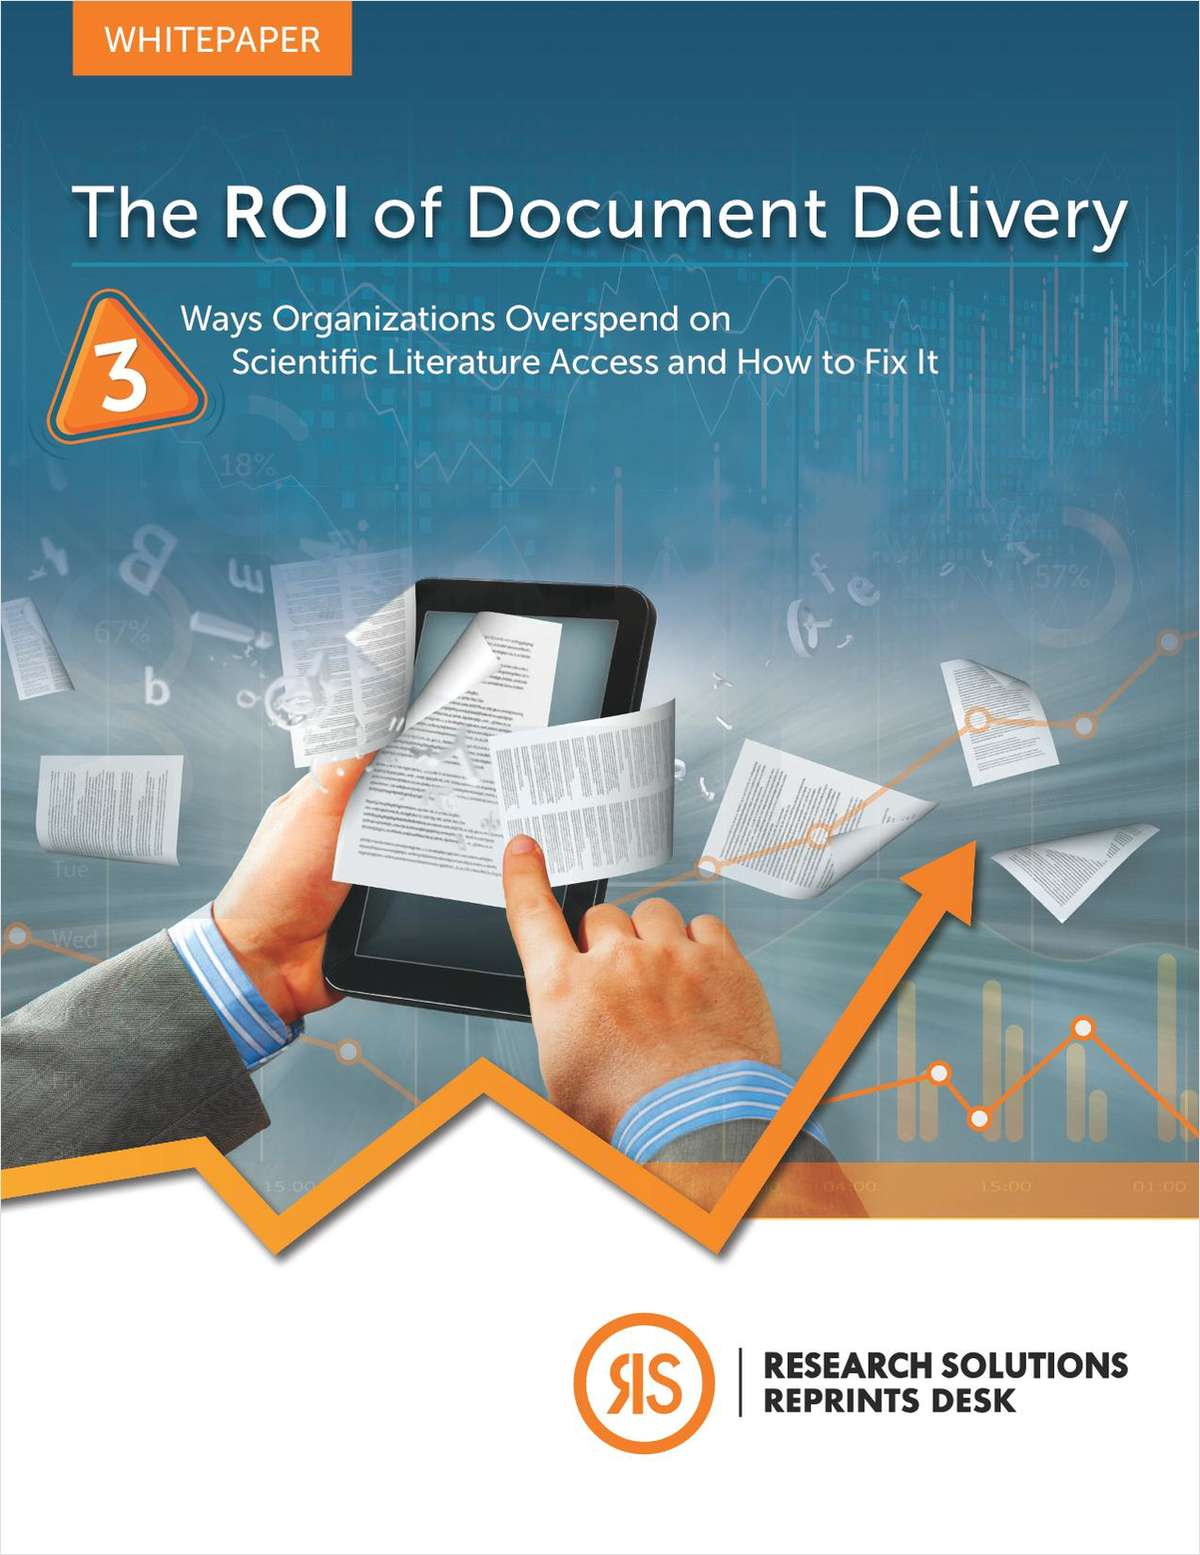 The ROI of Document Delivery